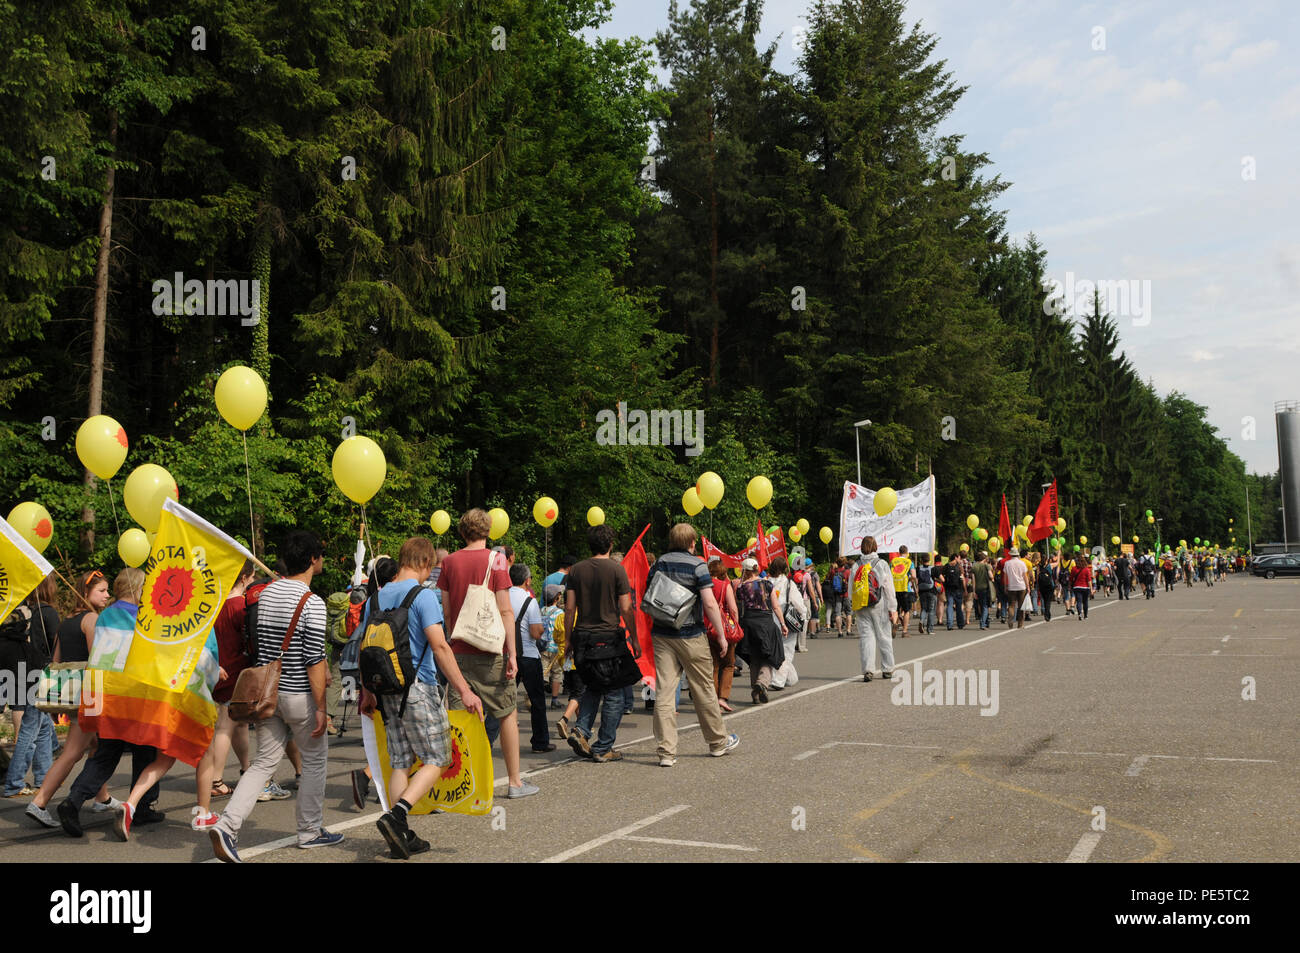 Thousands of anti atomic protesters come together in Döttingen, demanding for nuclear free energy future. - Stock Image